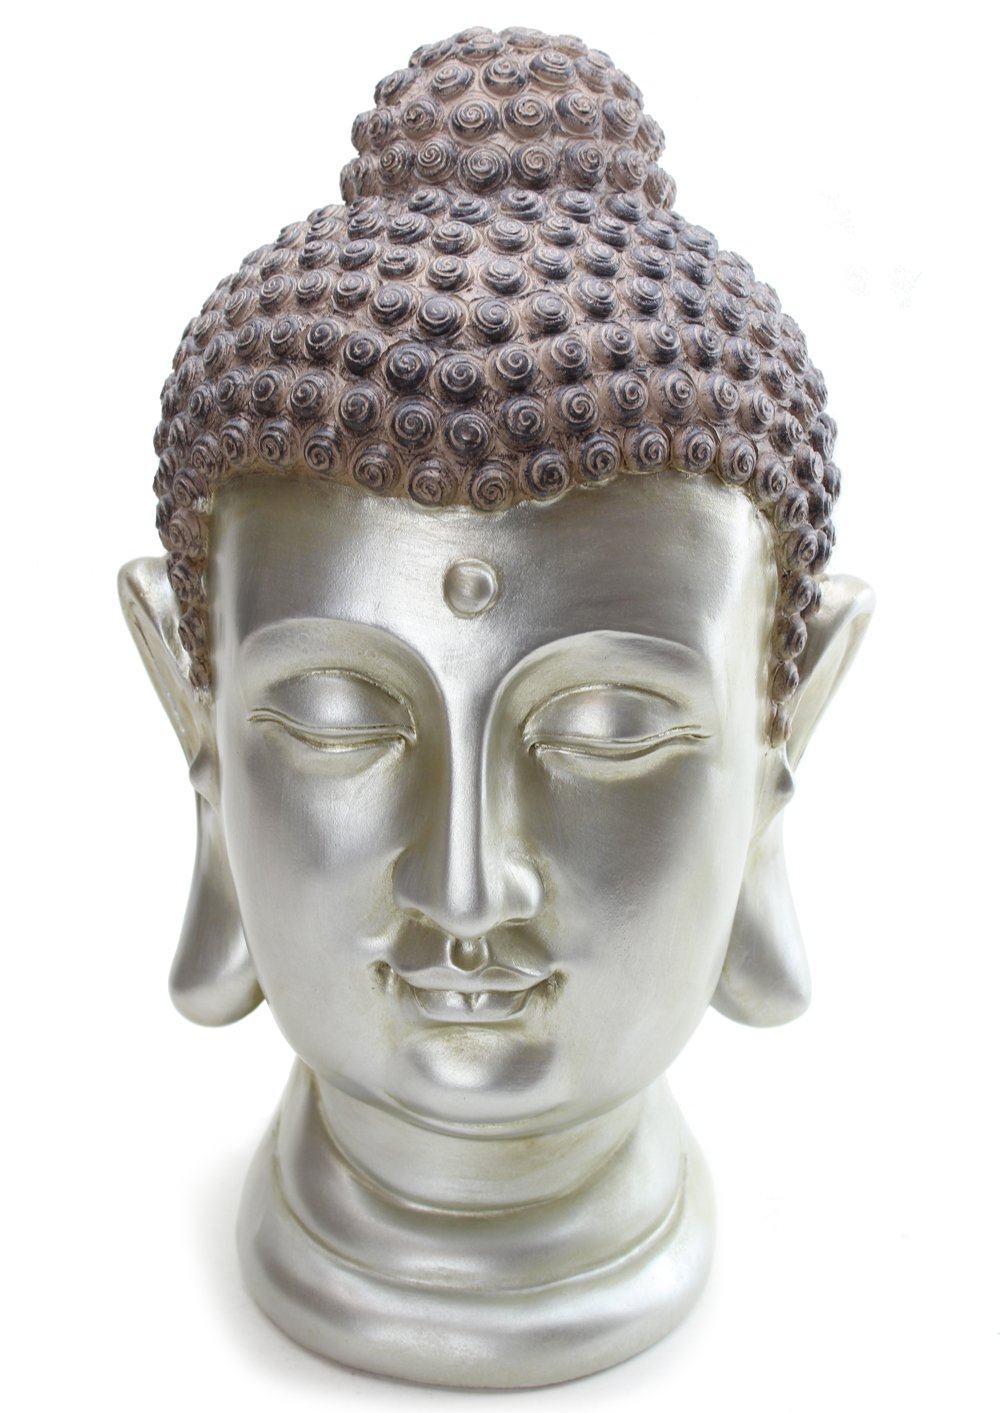 We pay your sales tax LARGE 12'' Tall Buddha Shakyamuni Head Statue - Smiling Meditating Buddha Blessing Mercy & Love Peaceful Statue India (G16631) Chinese Feng Shui Idea